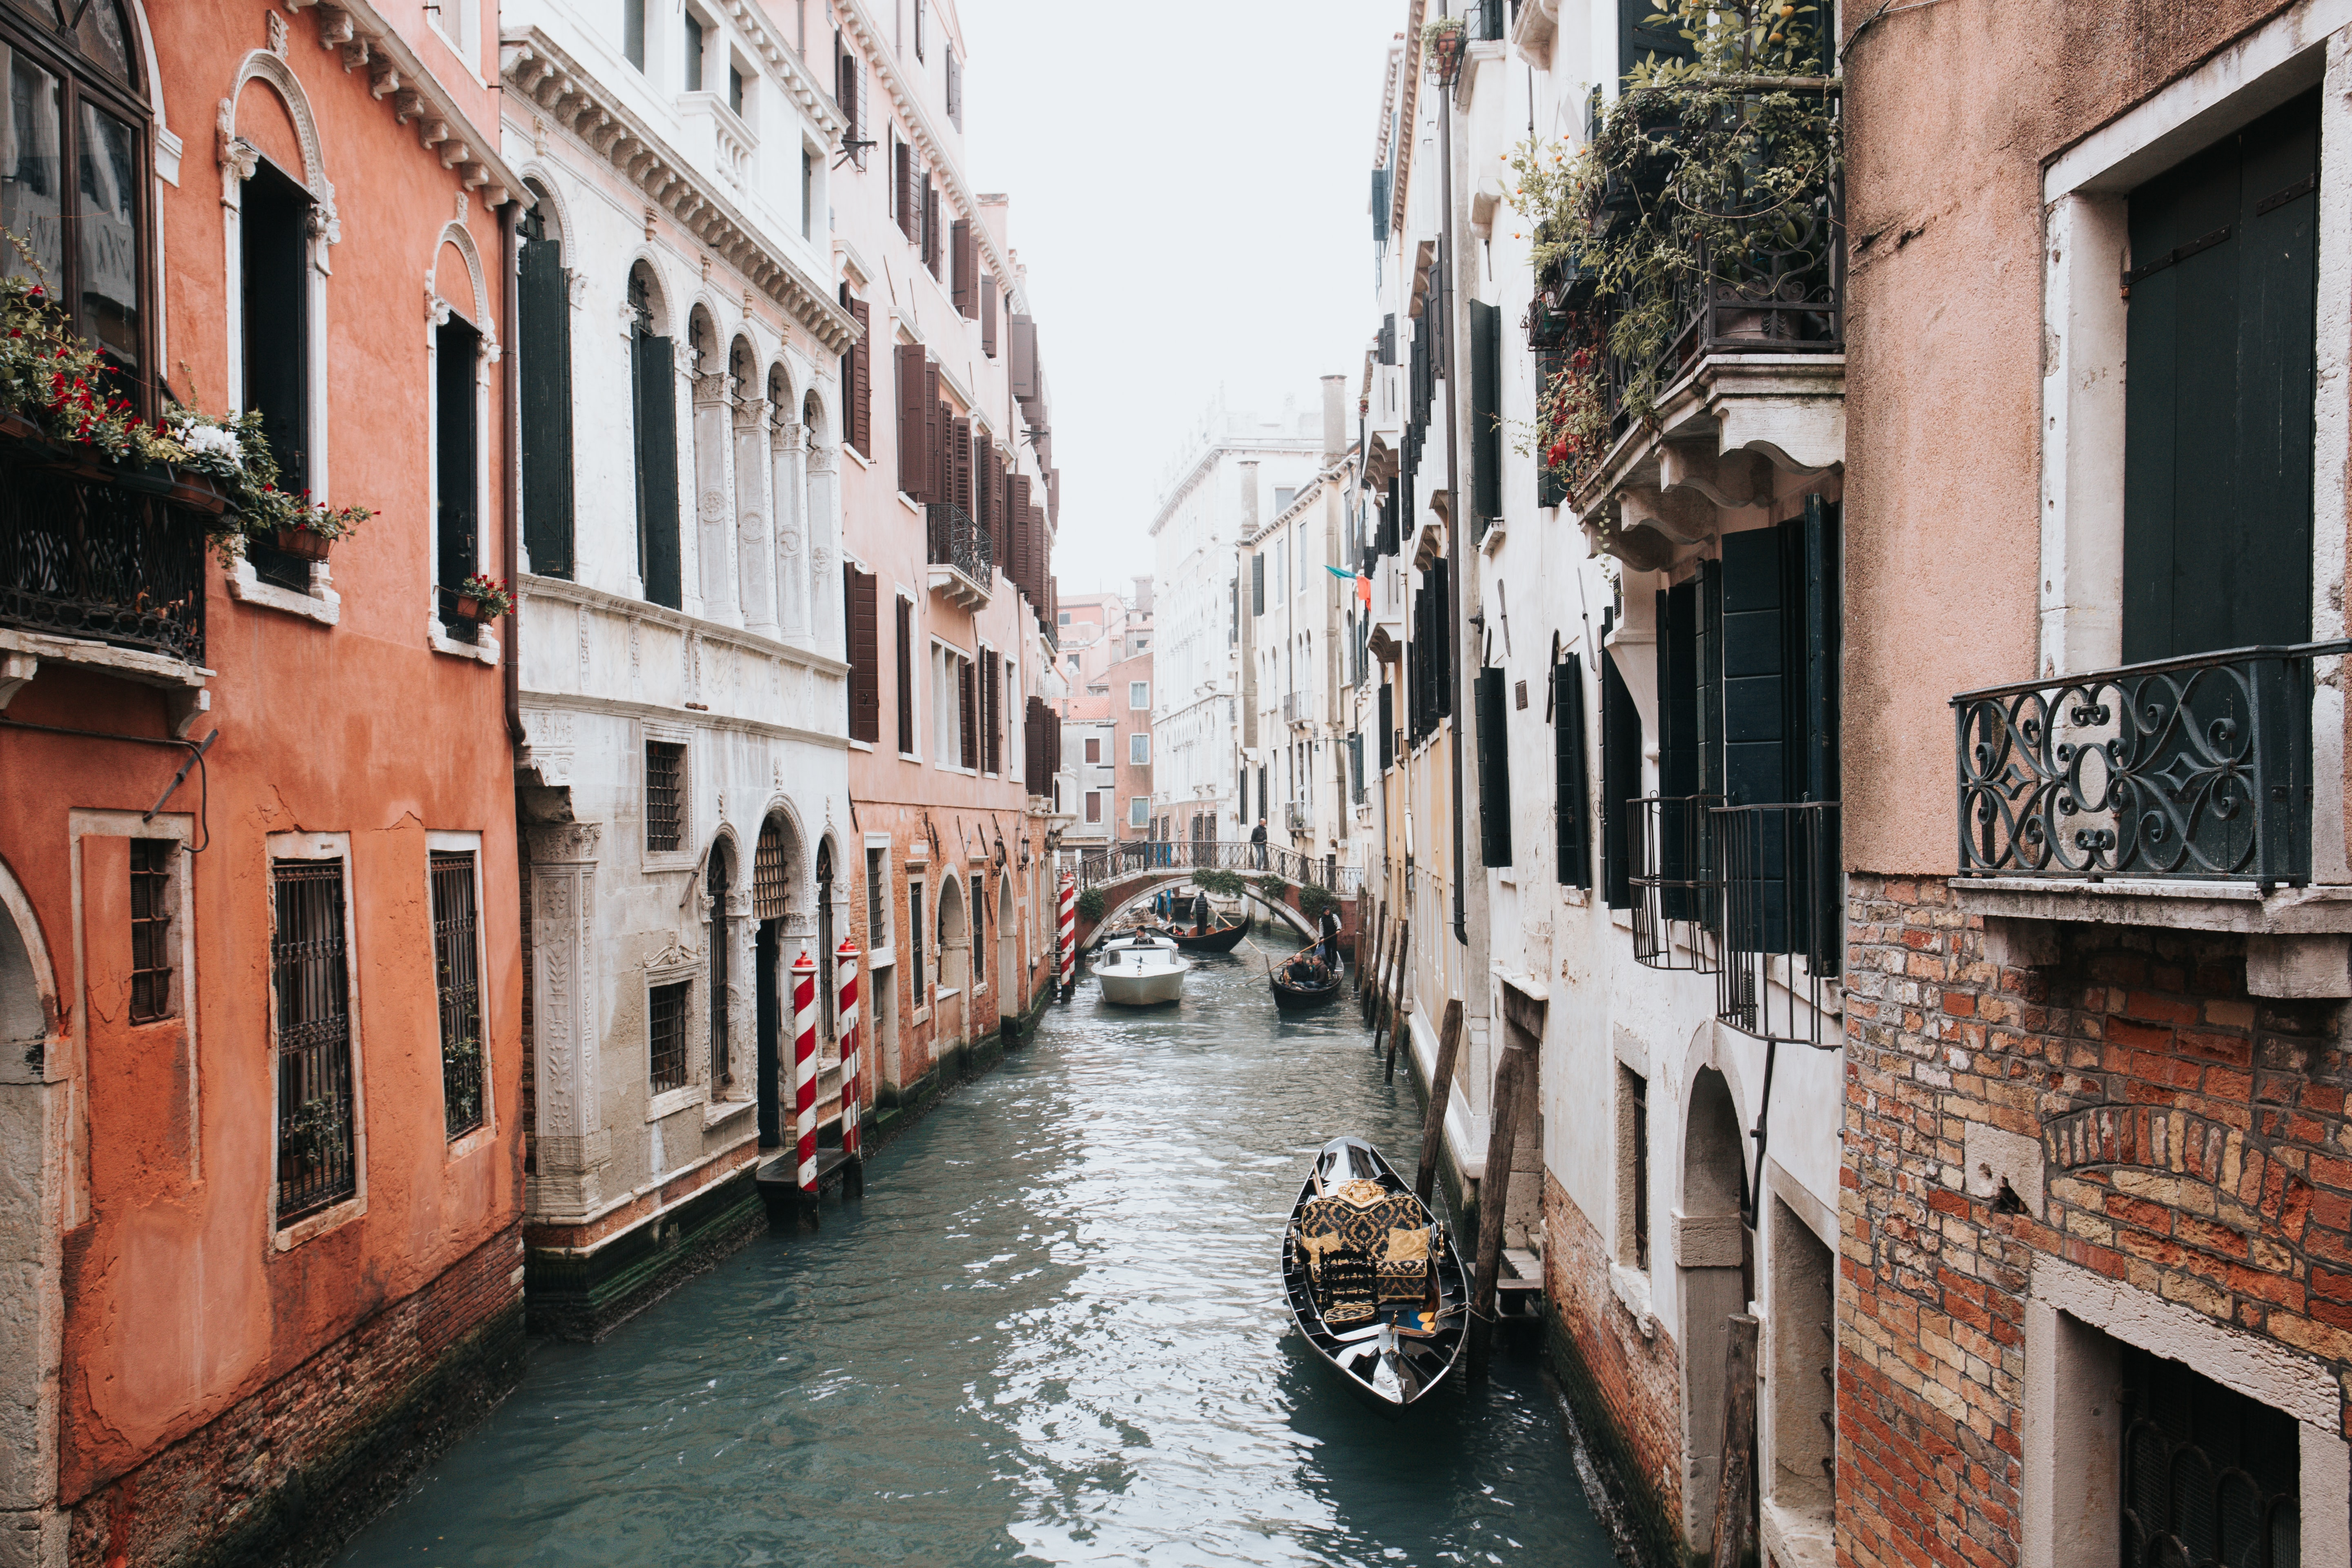 A canal in Venice with a gondola in front and a bridge in the back